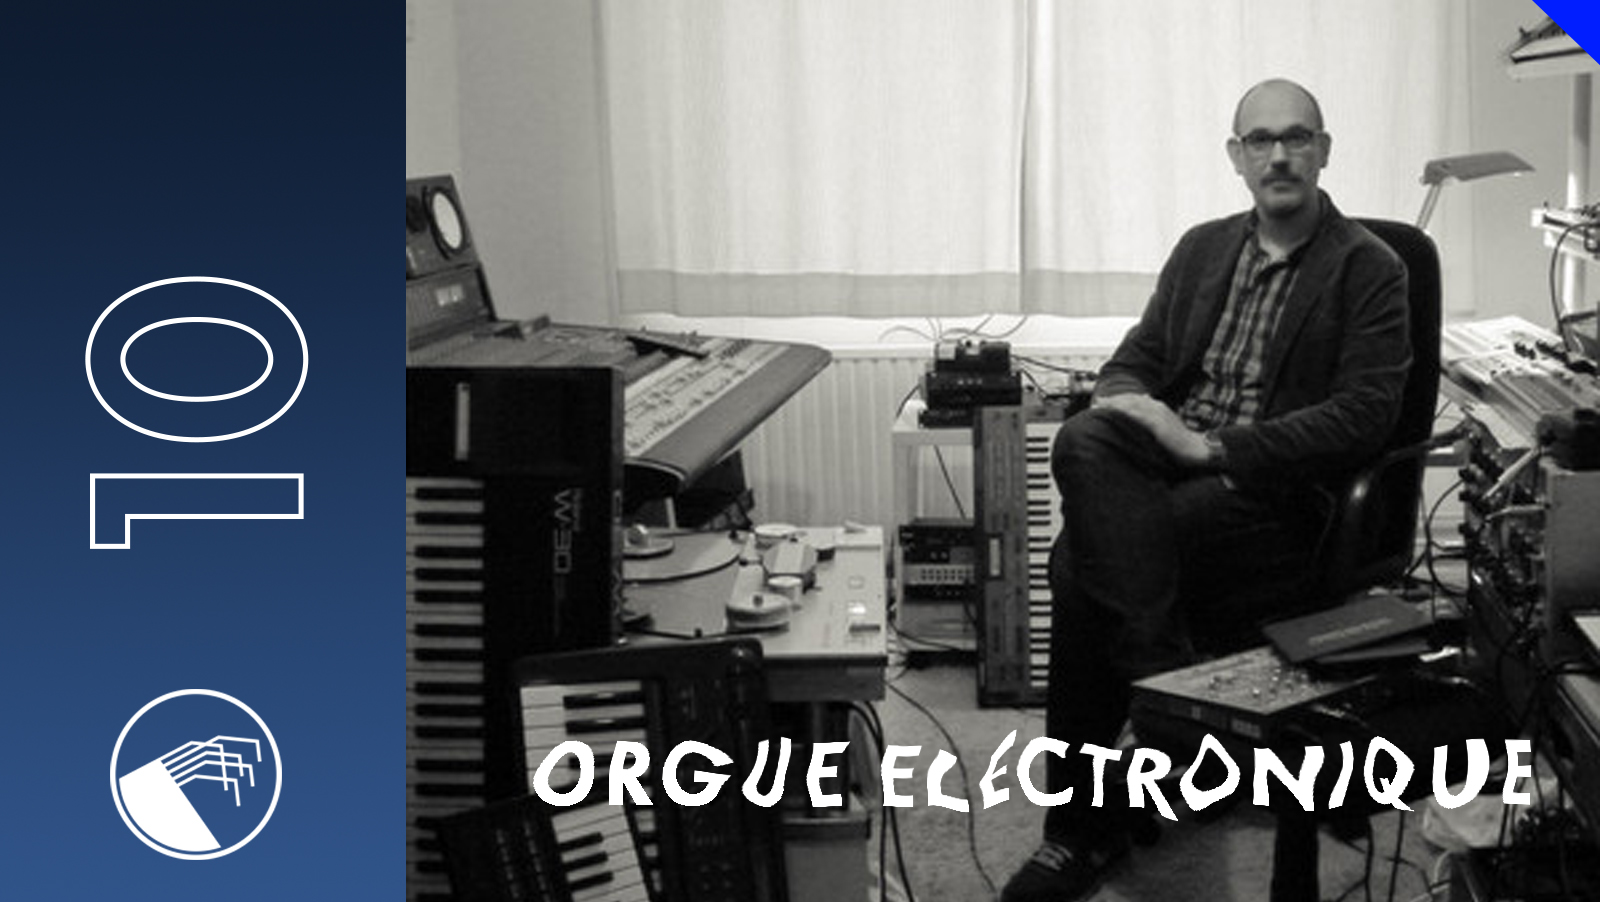 010 Orgue Electronique